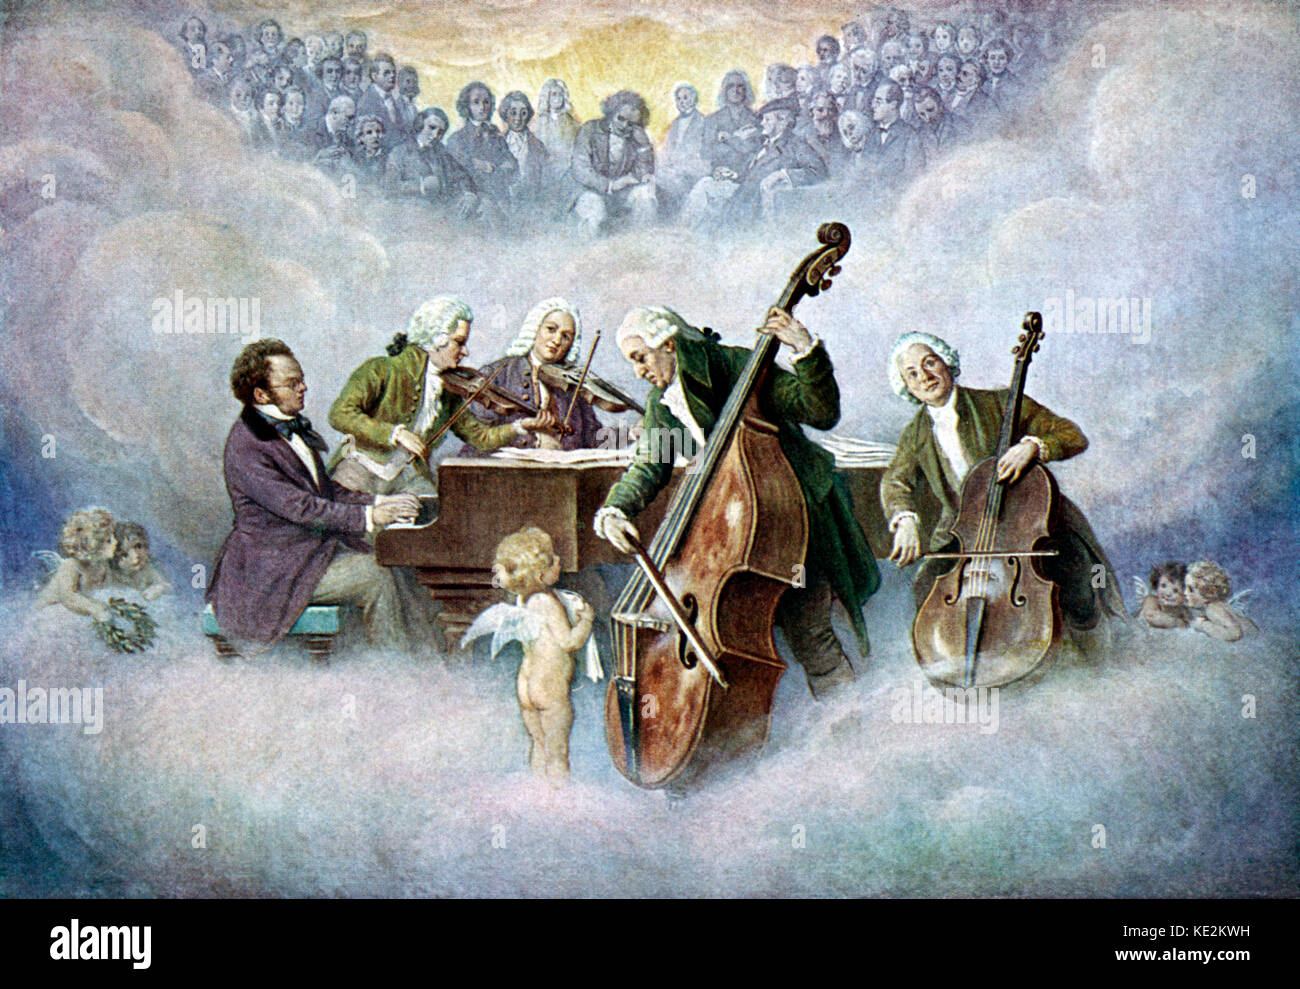 Schubert 's quintet playing in heaven with Mozart (violin), Bach (violin), Haydn (double bass) and Christoph - Stock Image